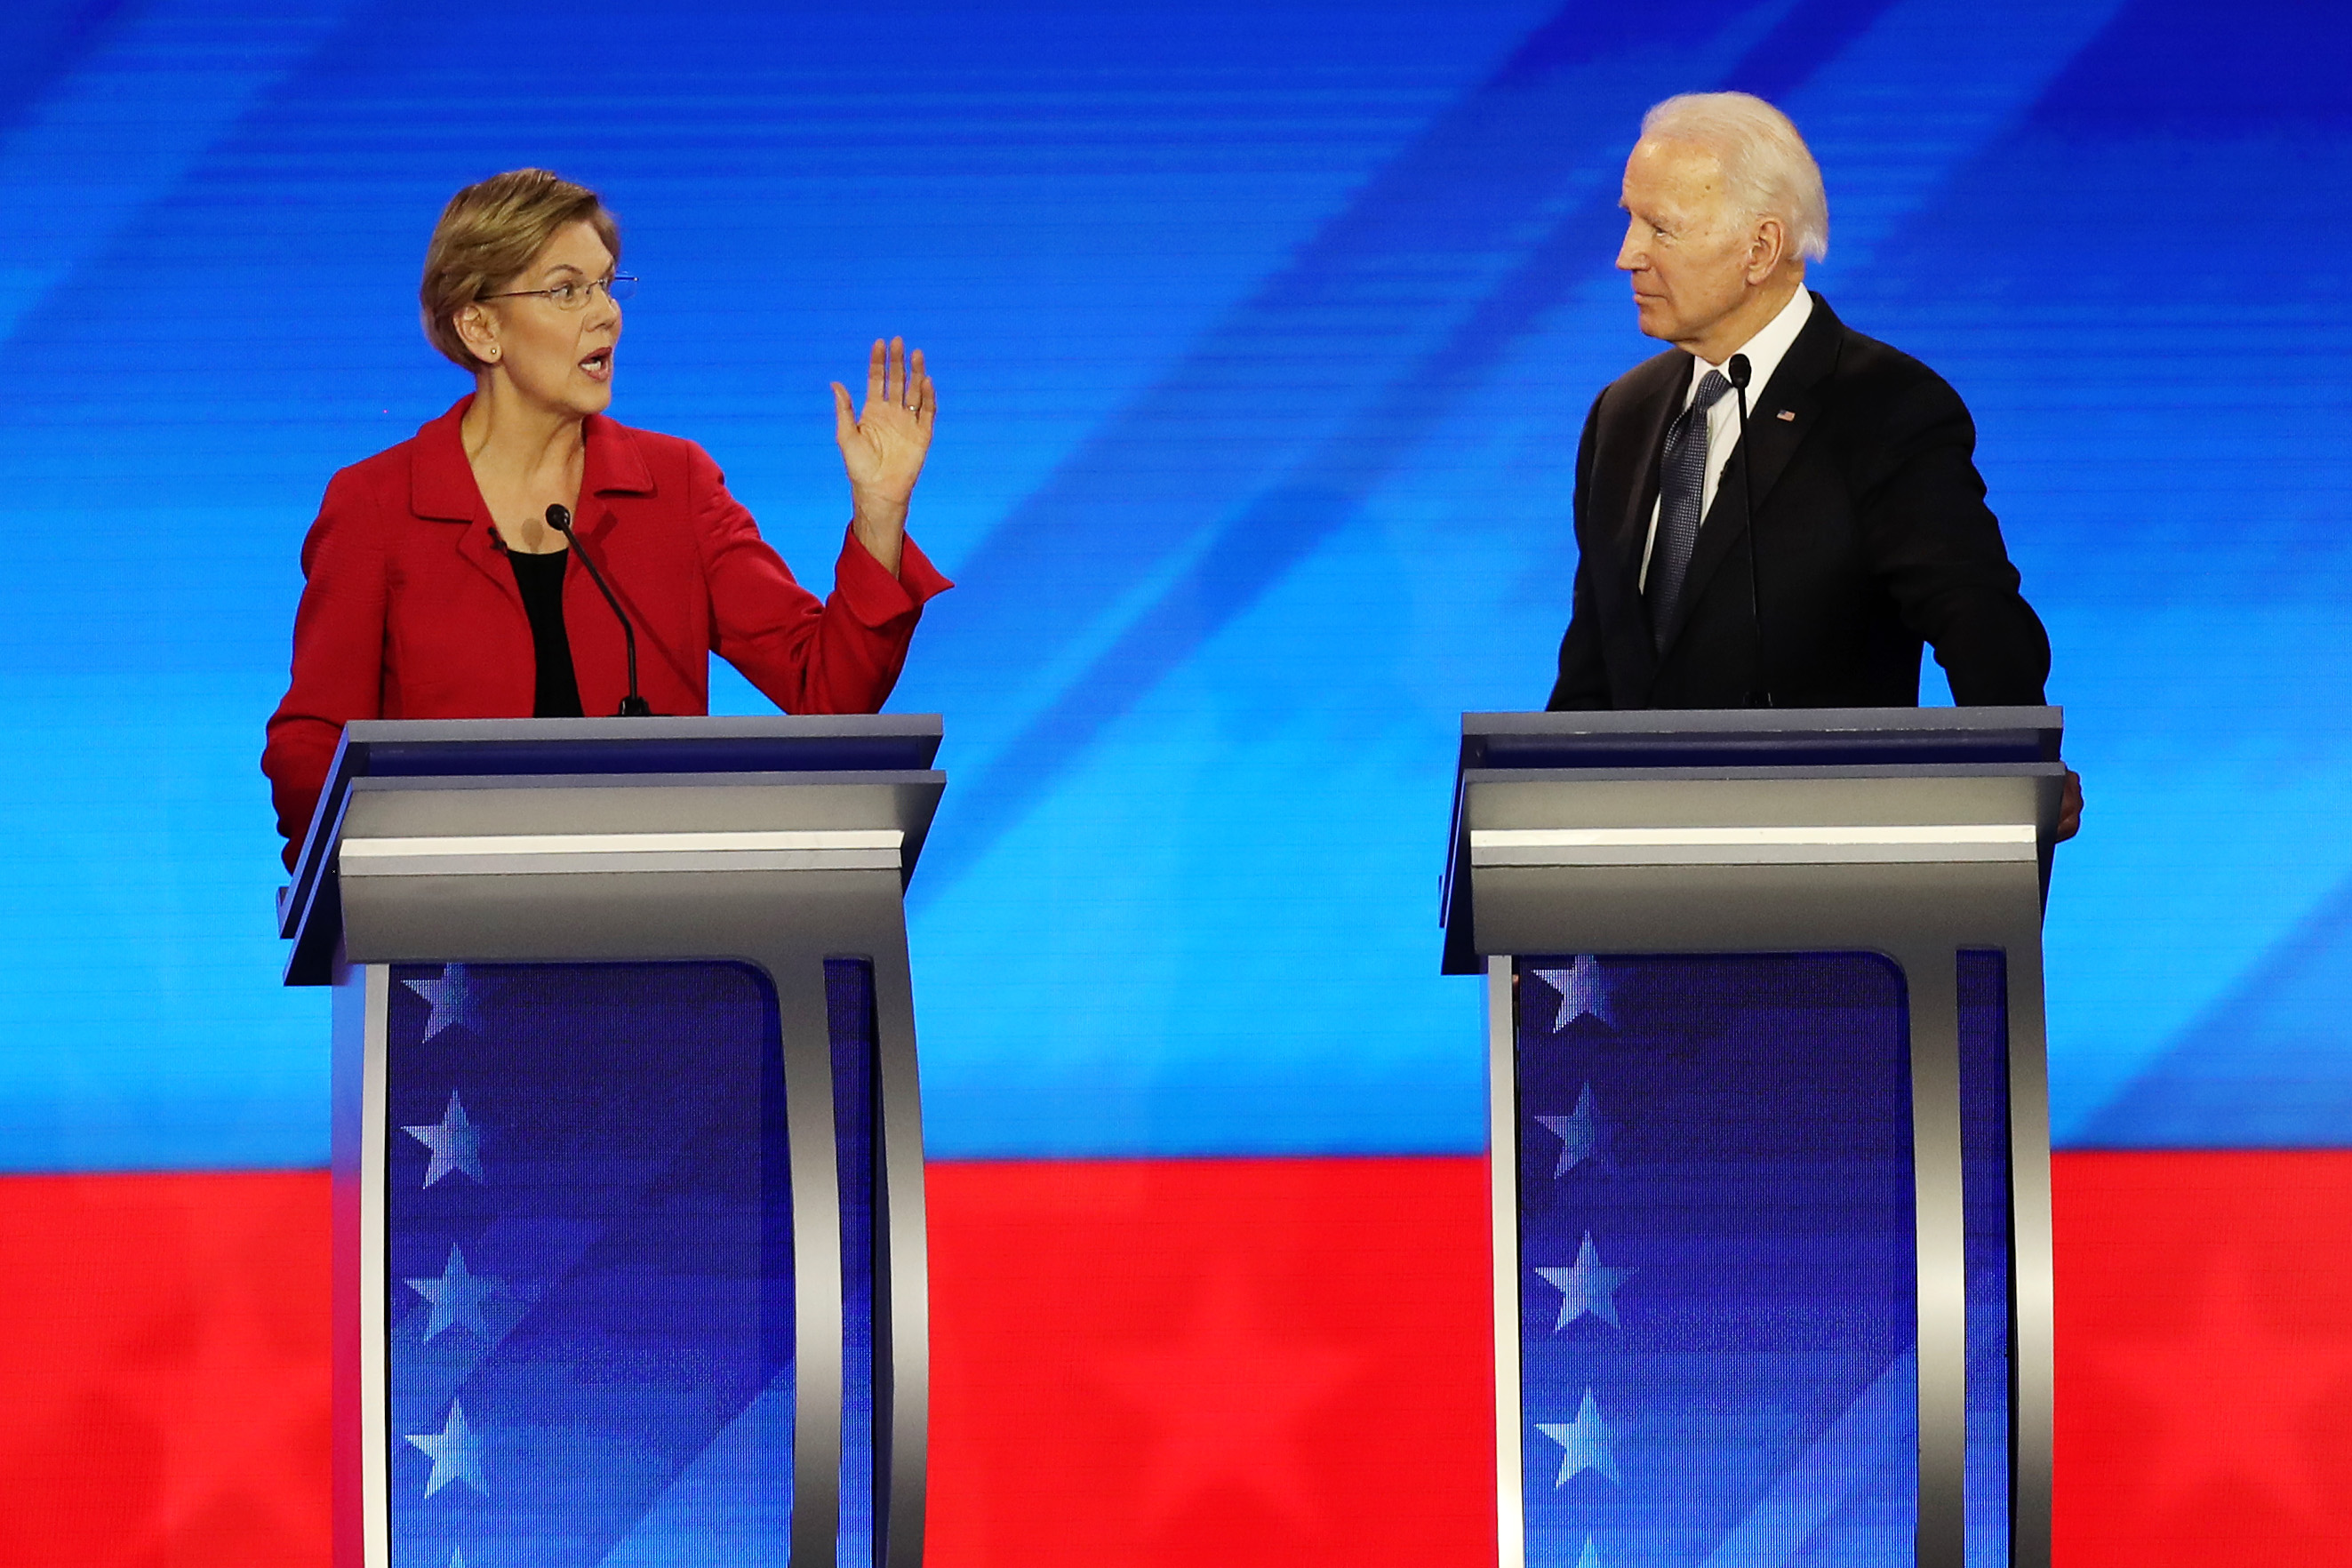 Democratic presidential candidates Sen. Elizabeth Warren (D-MA) and former Vice President Joe Biden participate in the Democratic presidential primary debate in the Sullivan Arena at St. Anselm College on February 07, 2020 in Manchester, New Hampshire. (Joe Raedle/Getty Images)